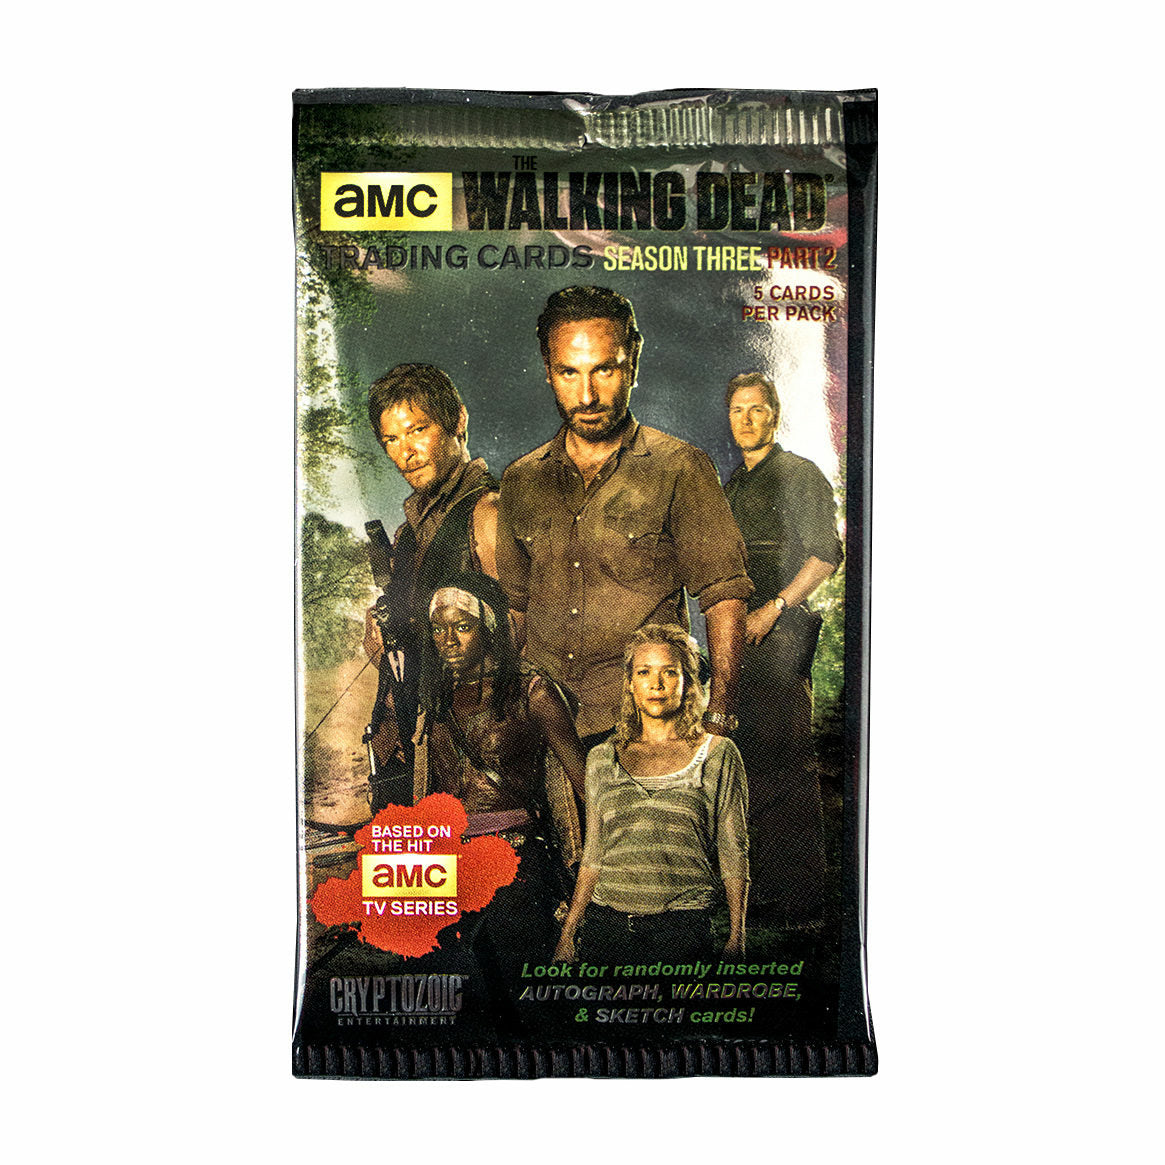 The Walking Dead Season 3 Part 2 Trading Cards (1 Random)